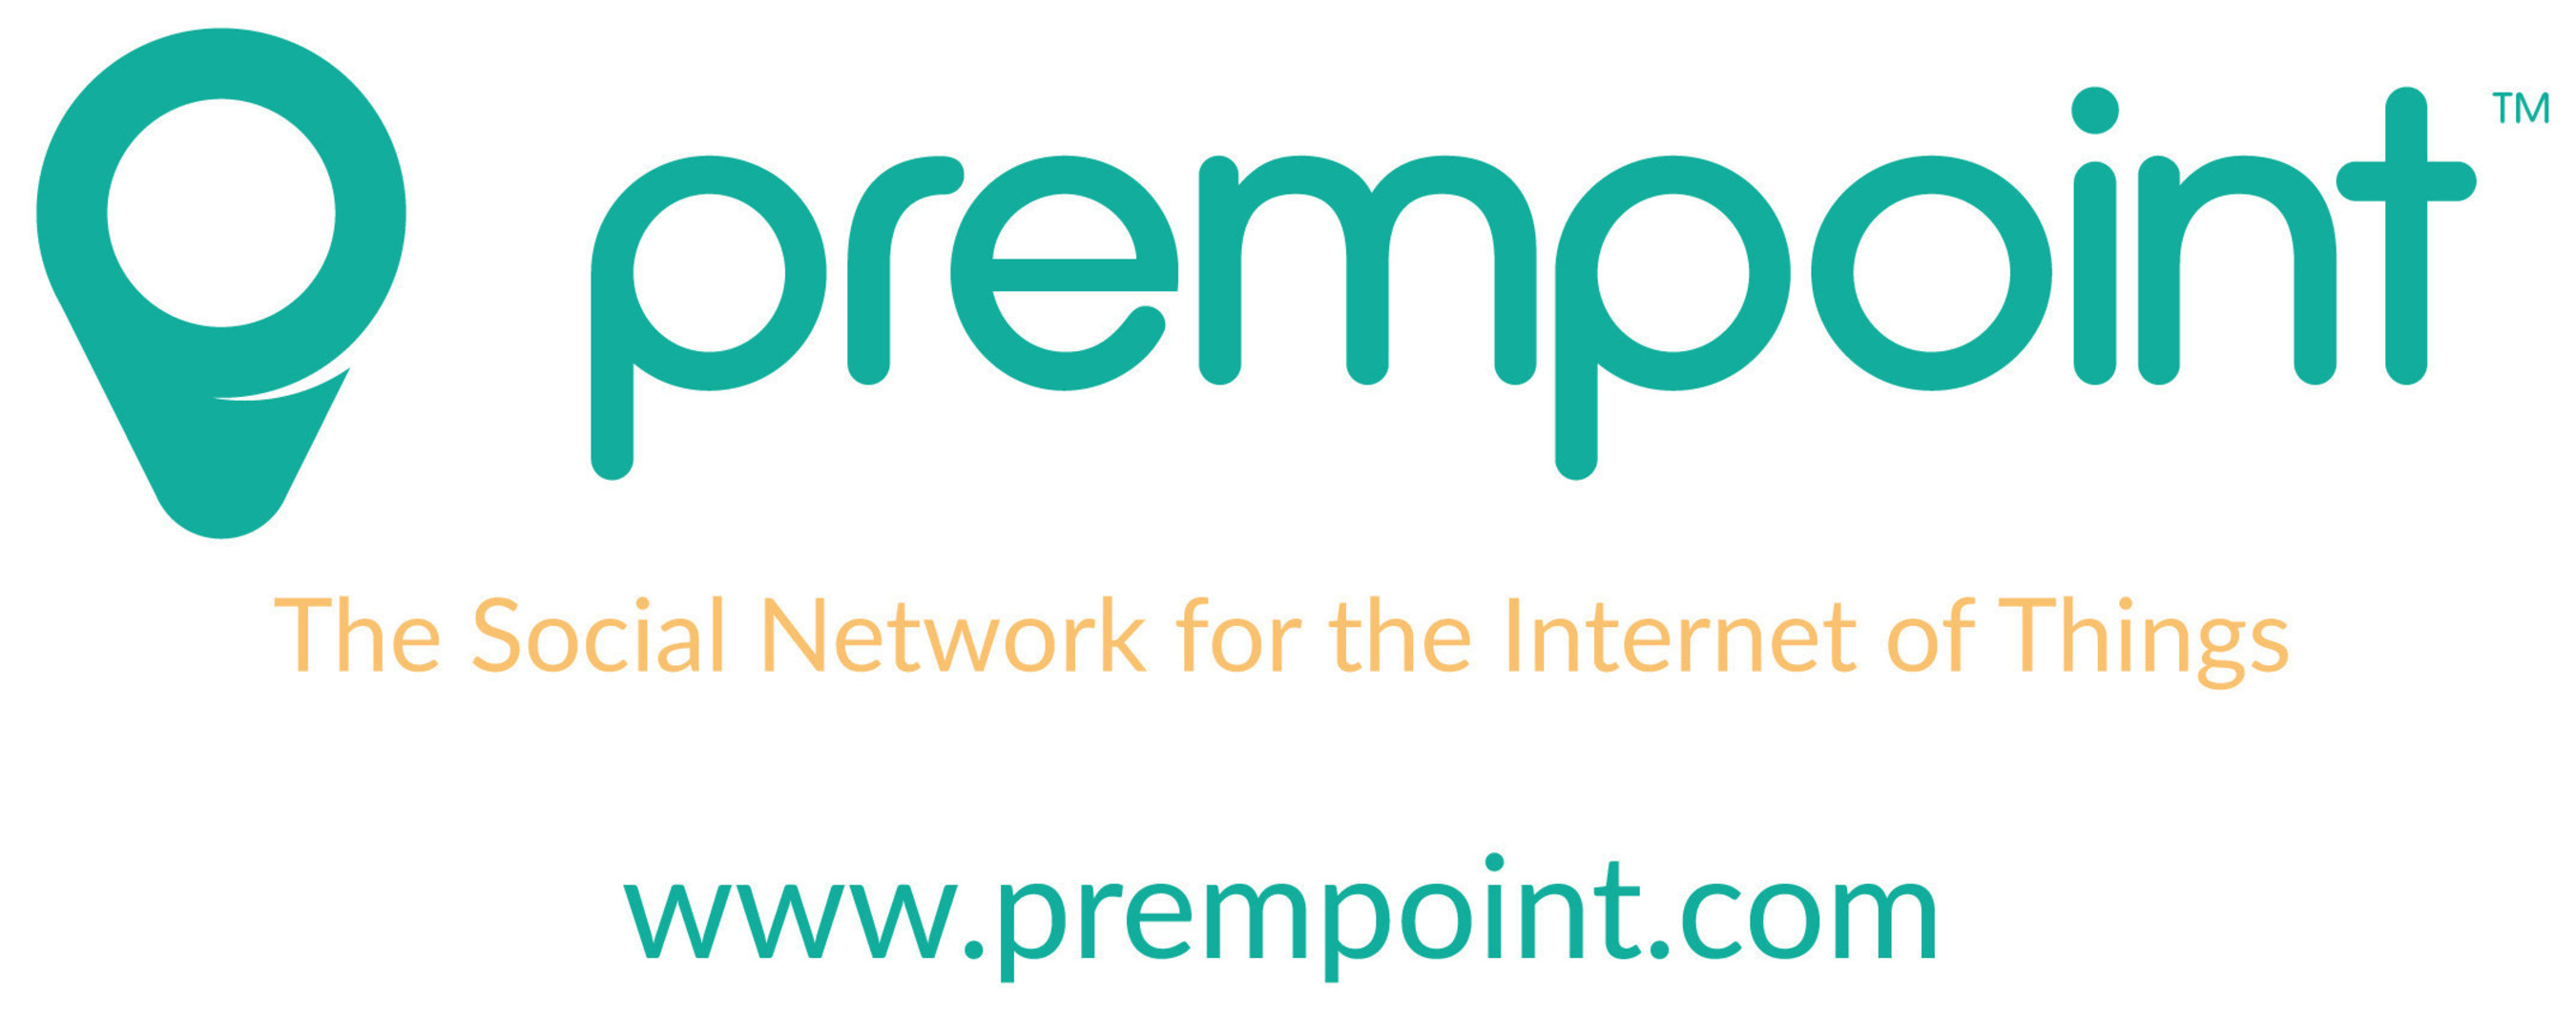 Prempoint Inc. Announces Beta Launch Offering a Mobile App that Brings to Users a New Concept 'The Social Network for the Internet of Things'